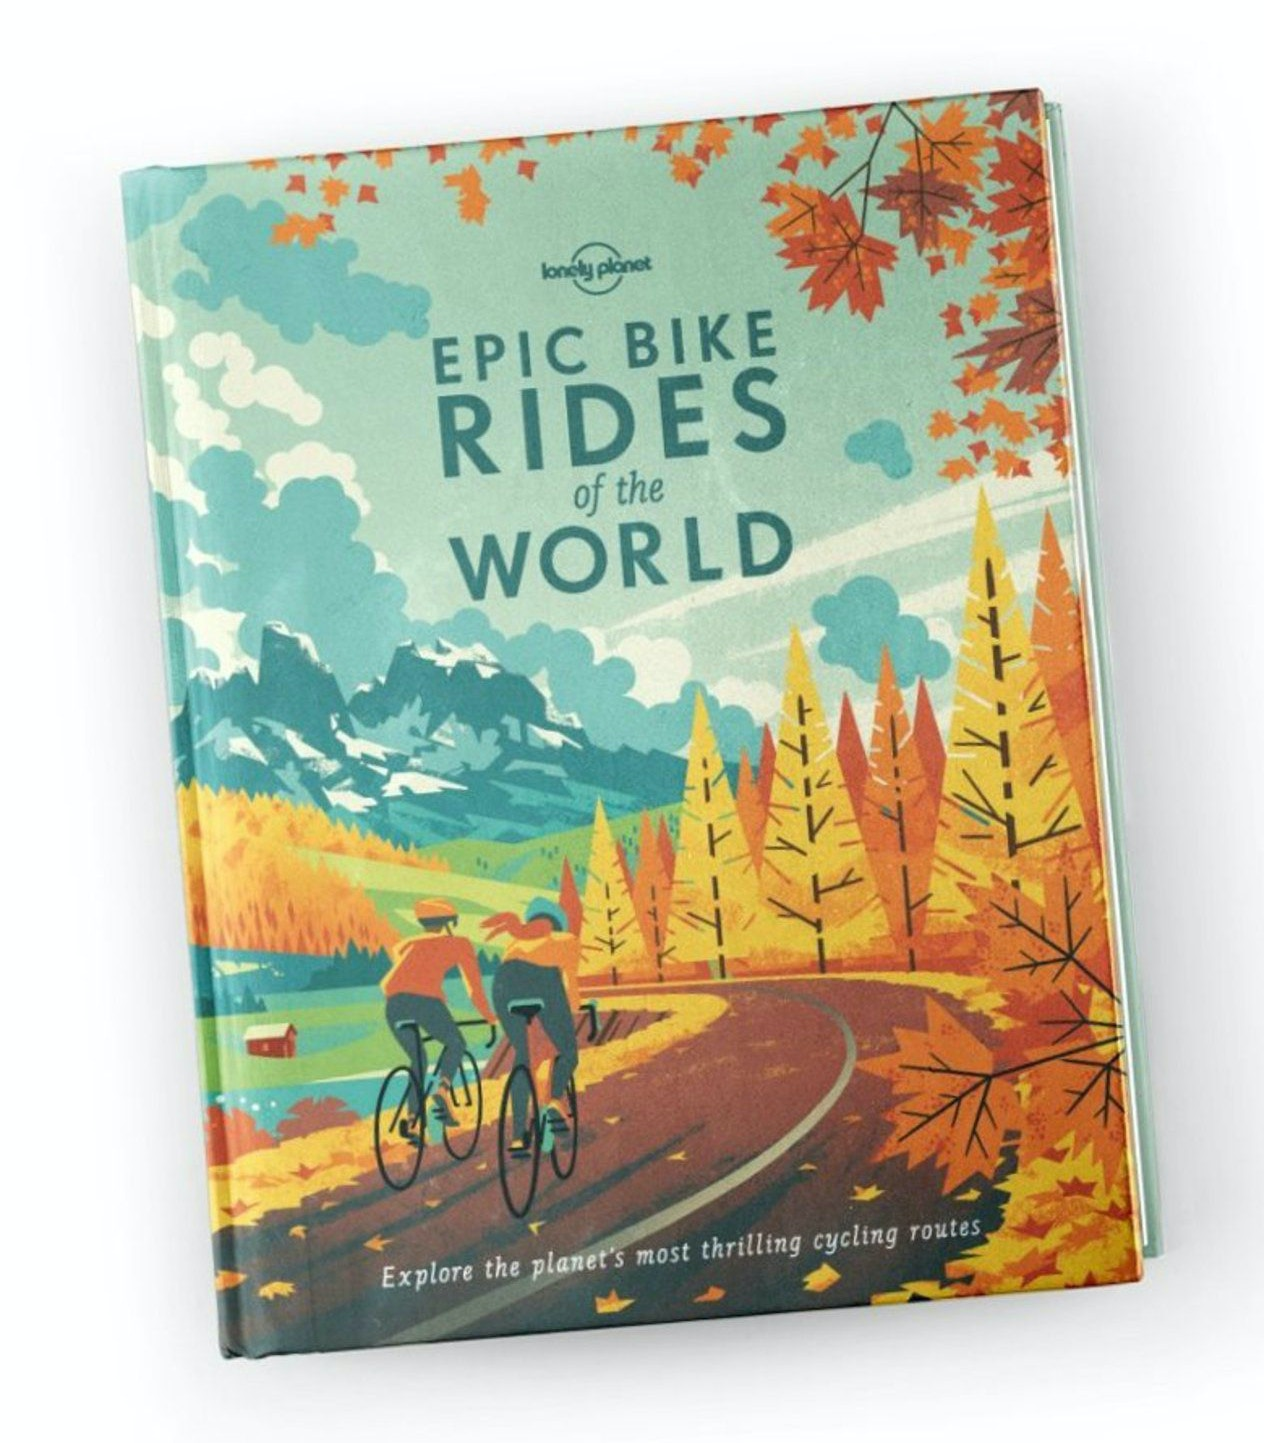 Epic_bike_rides_of_the_world_1